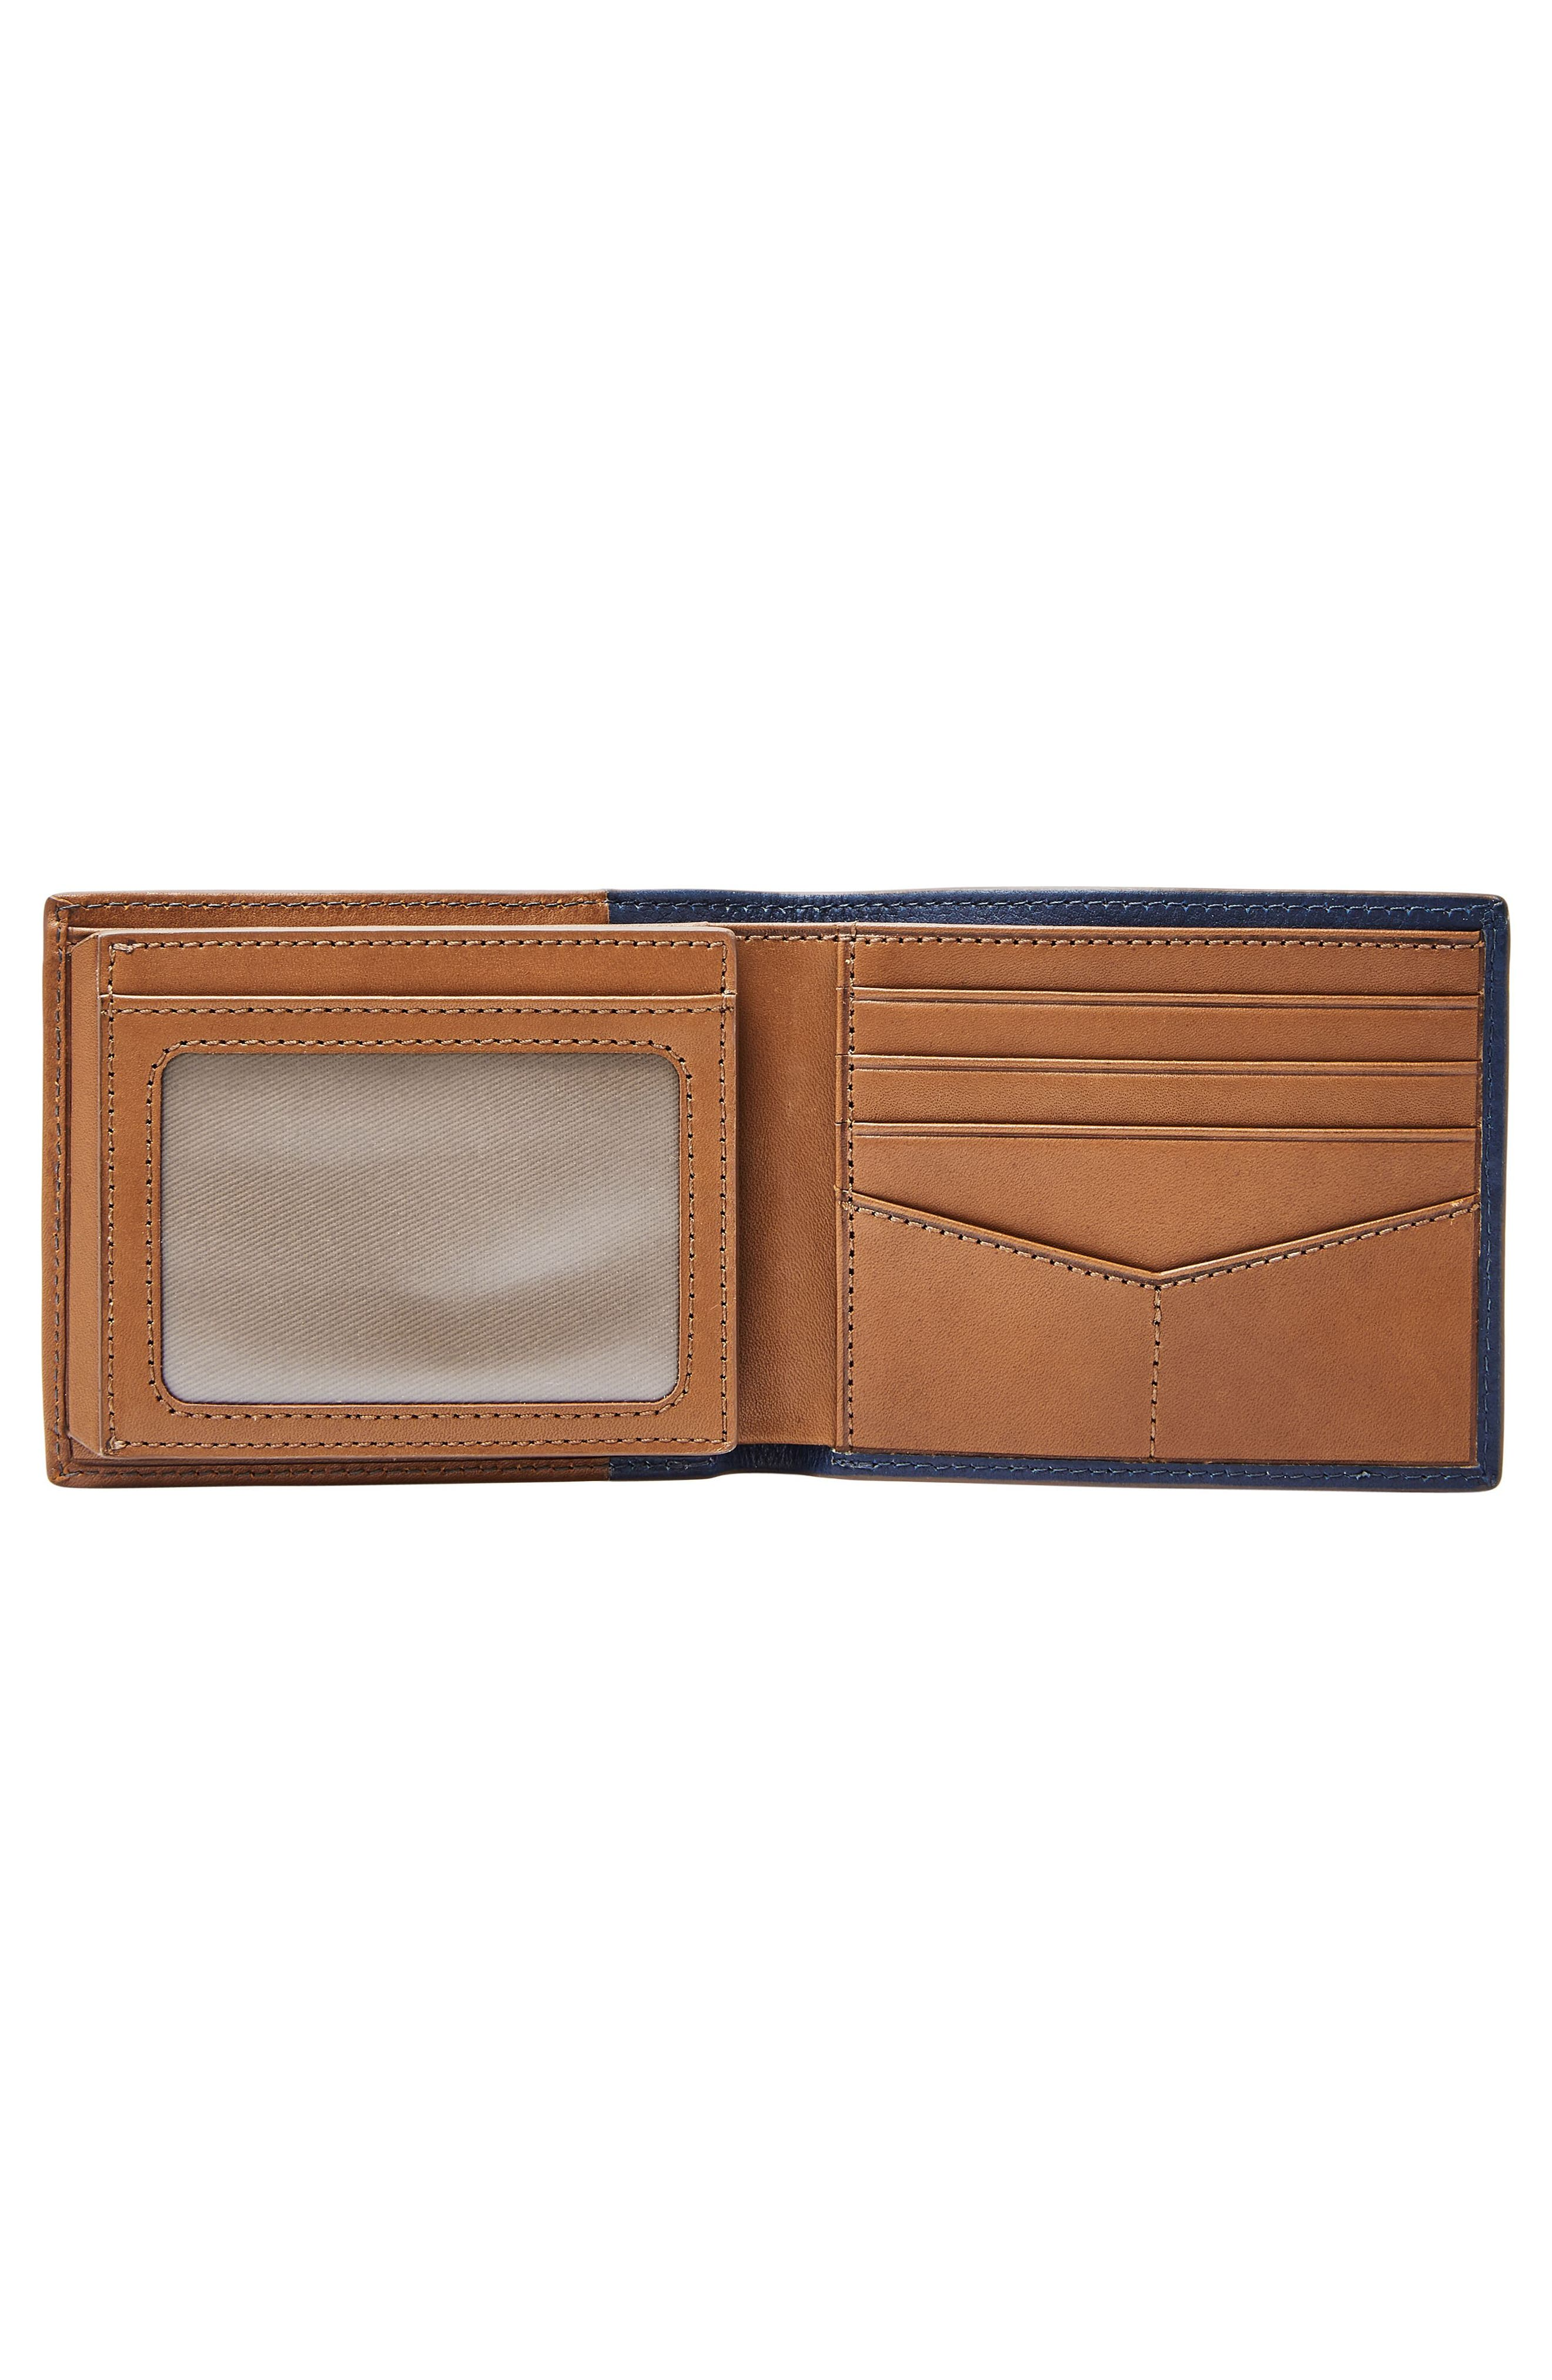 FOSSIL, Ward Leather Wallet, Alternate thumbnail 3, color, NAVY